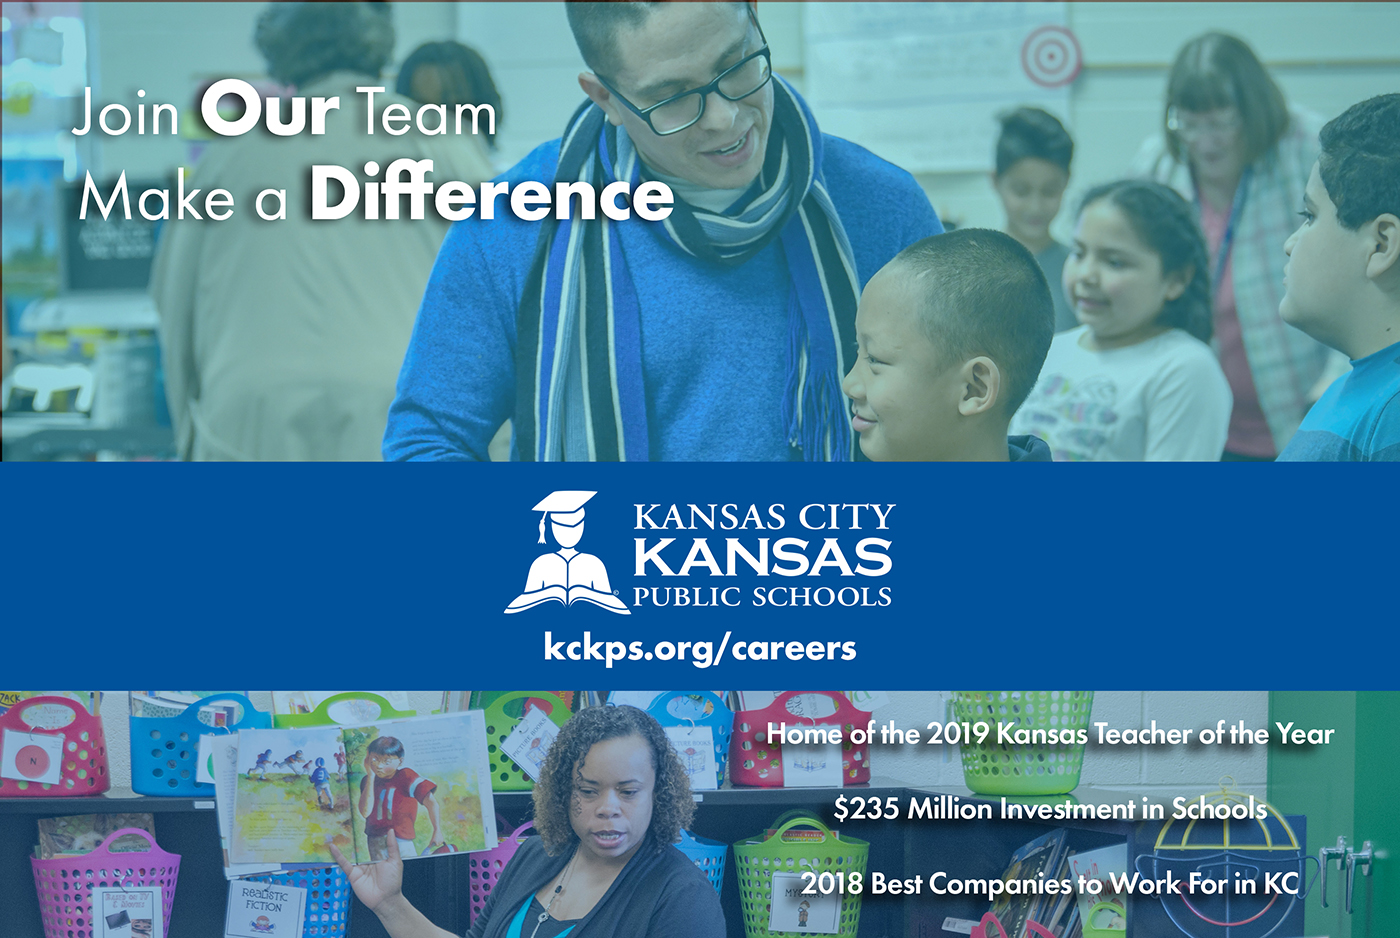 Recruitment Ad - go to kckps.org/careers for more information